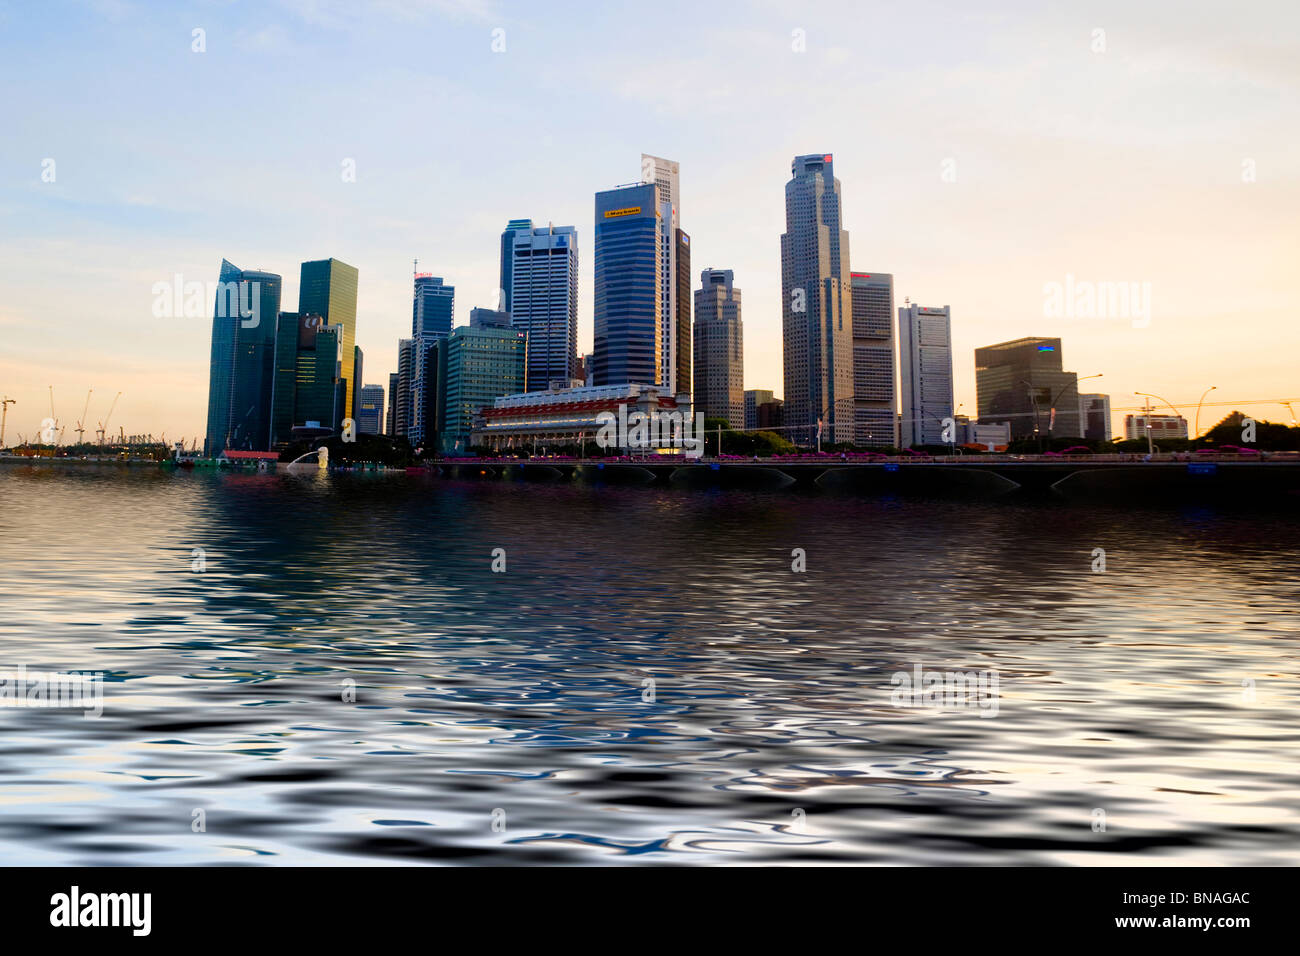 Skyline of Singapore - Stock Image